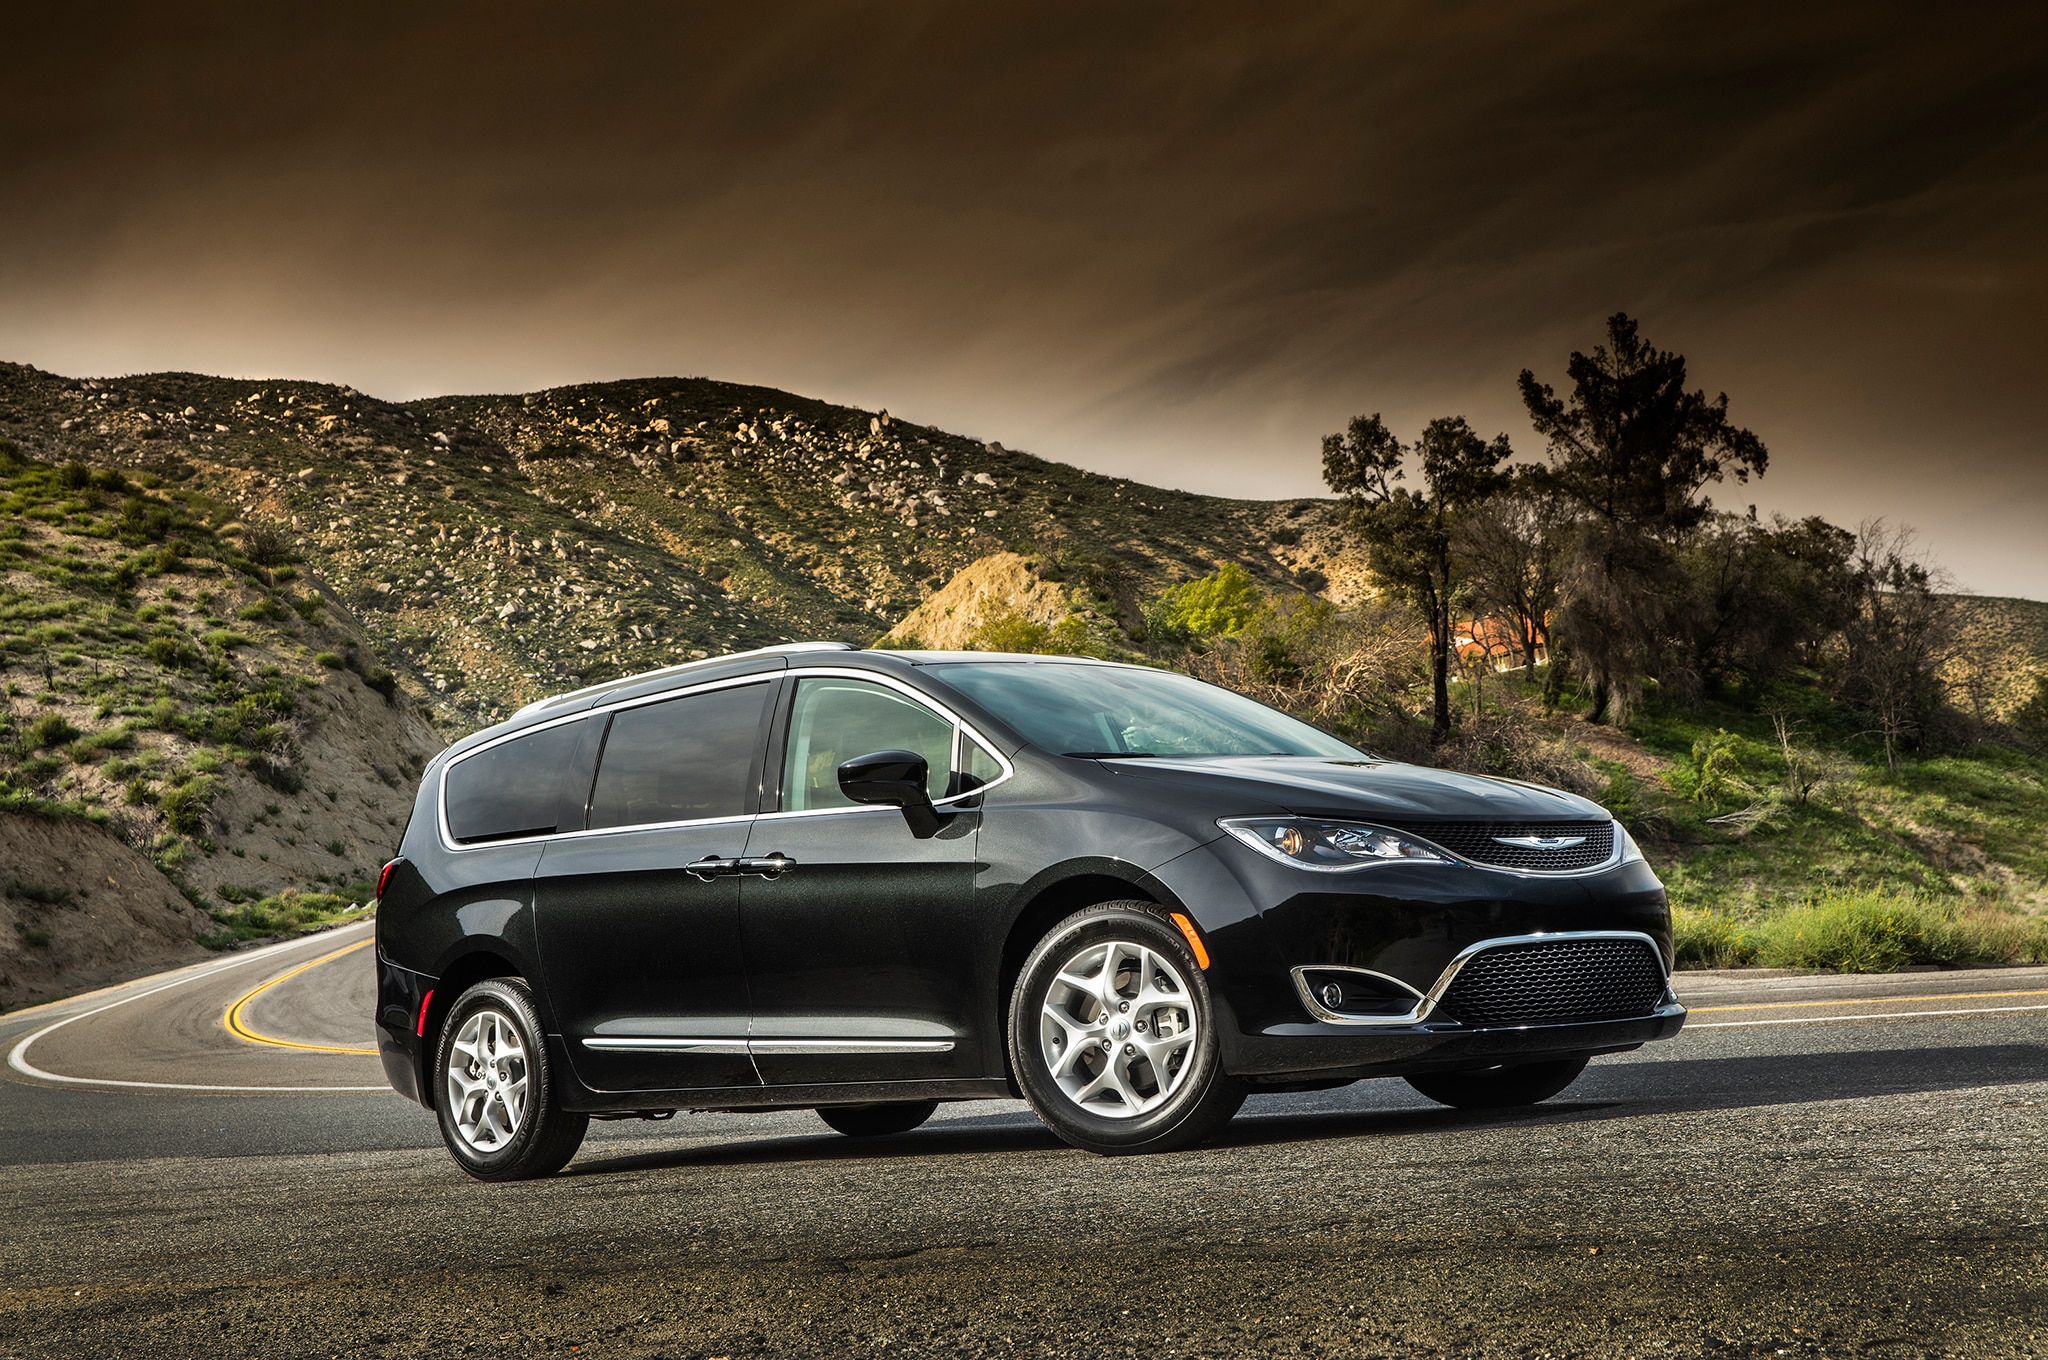 pacifica chrysler package appearance adds side magazine